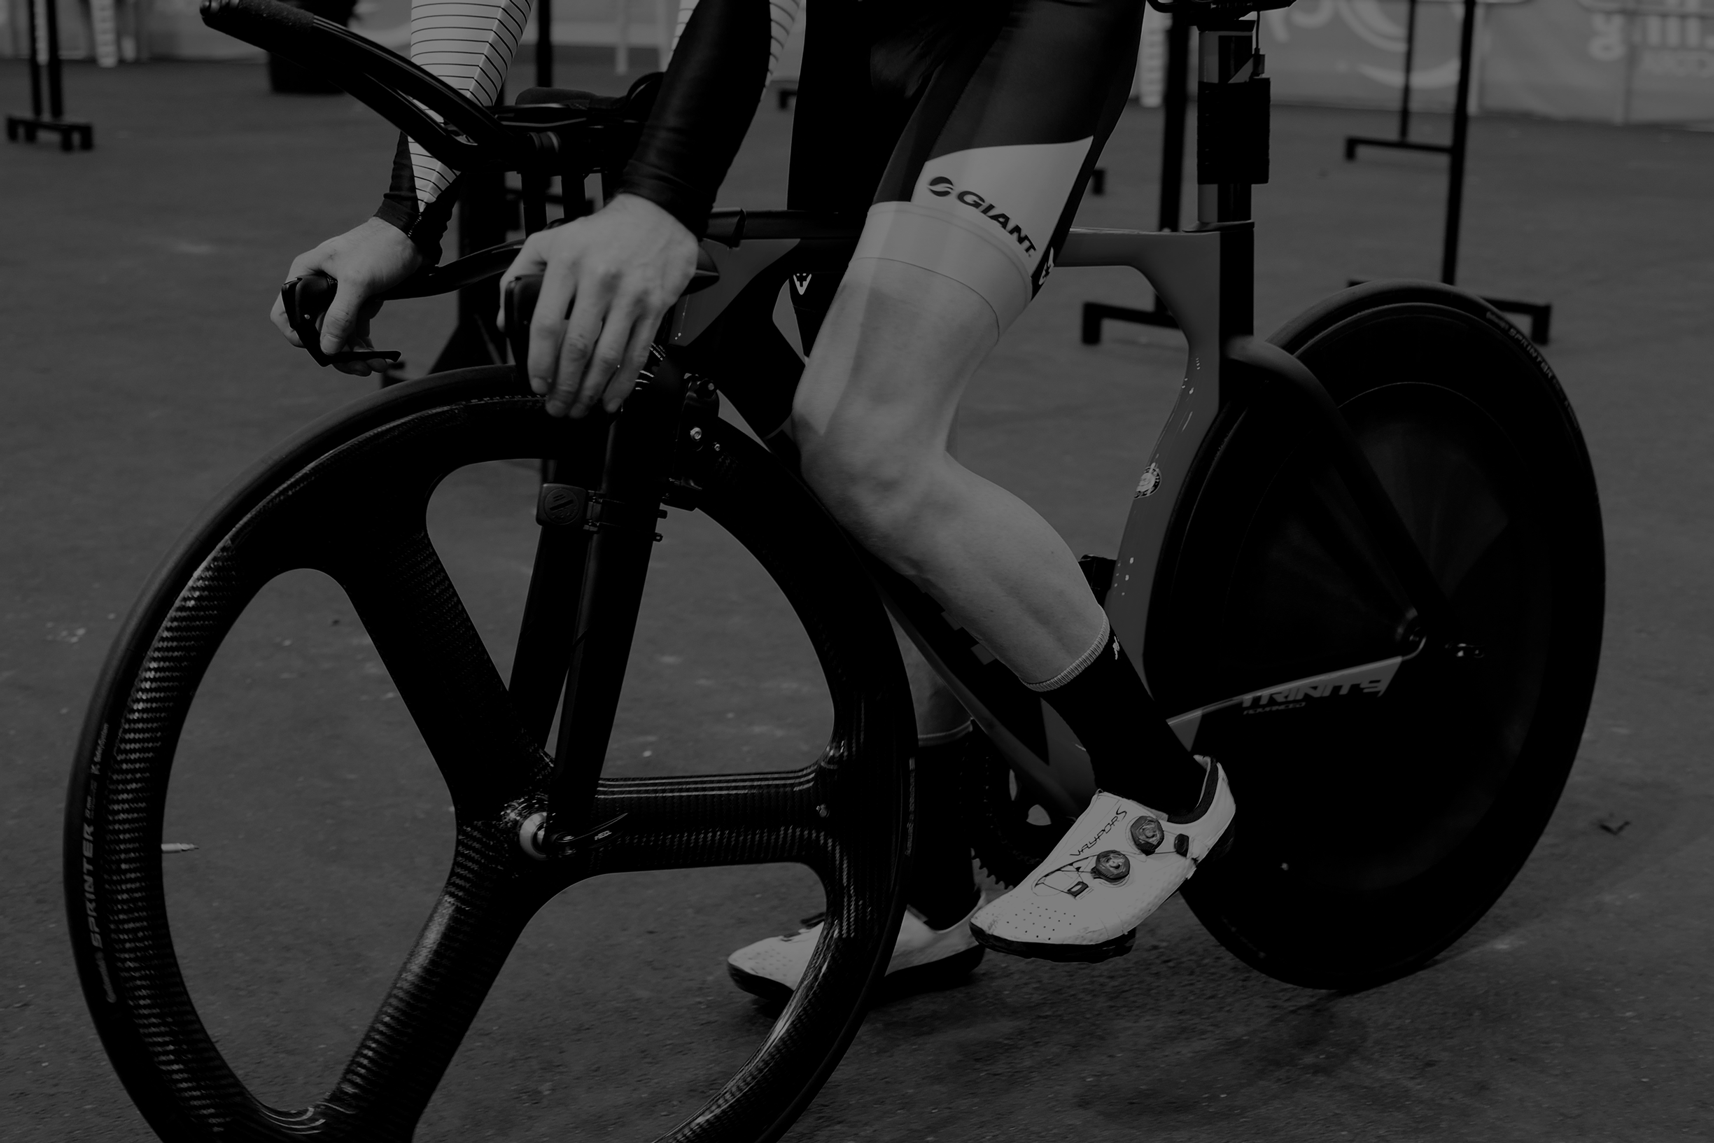 _ - The optimisation of equipment sees gains that can be immediately recognised, without a timeframe for adaptation and without a physiological cost to your performance. When you're looking for system-wide improvements, track aero testing informs the investment in equipment.